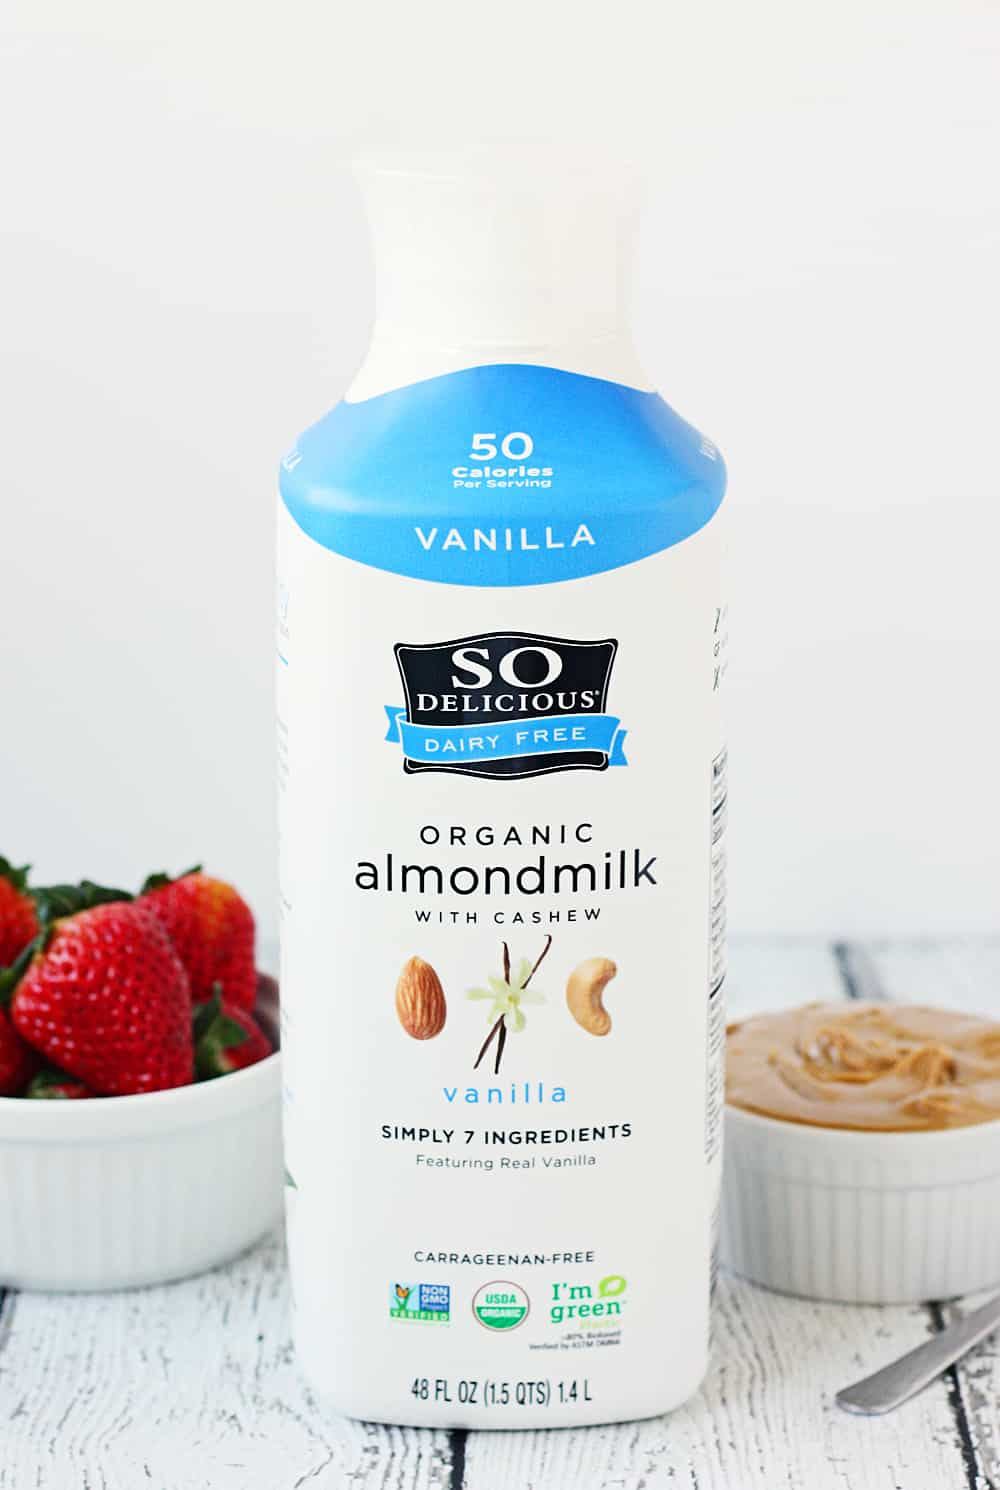 So Delicious Dairy Free Organic Almondmilk